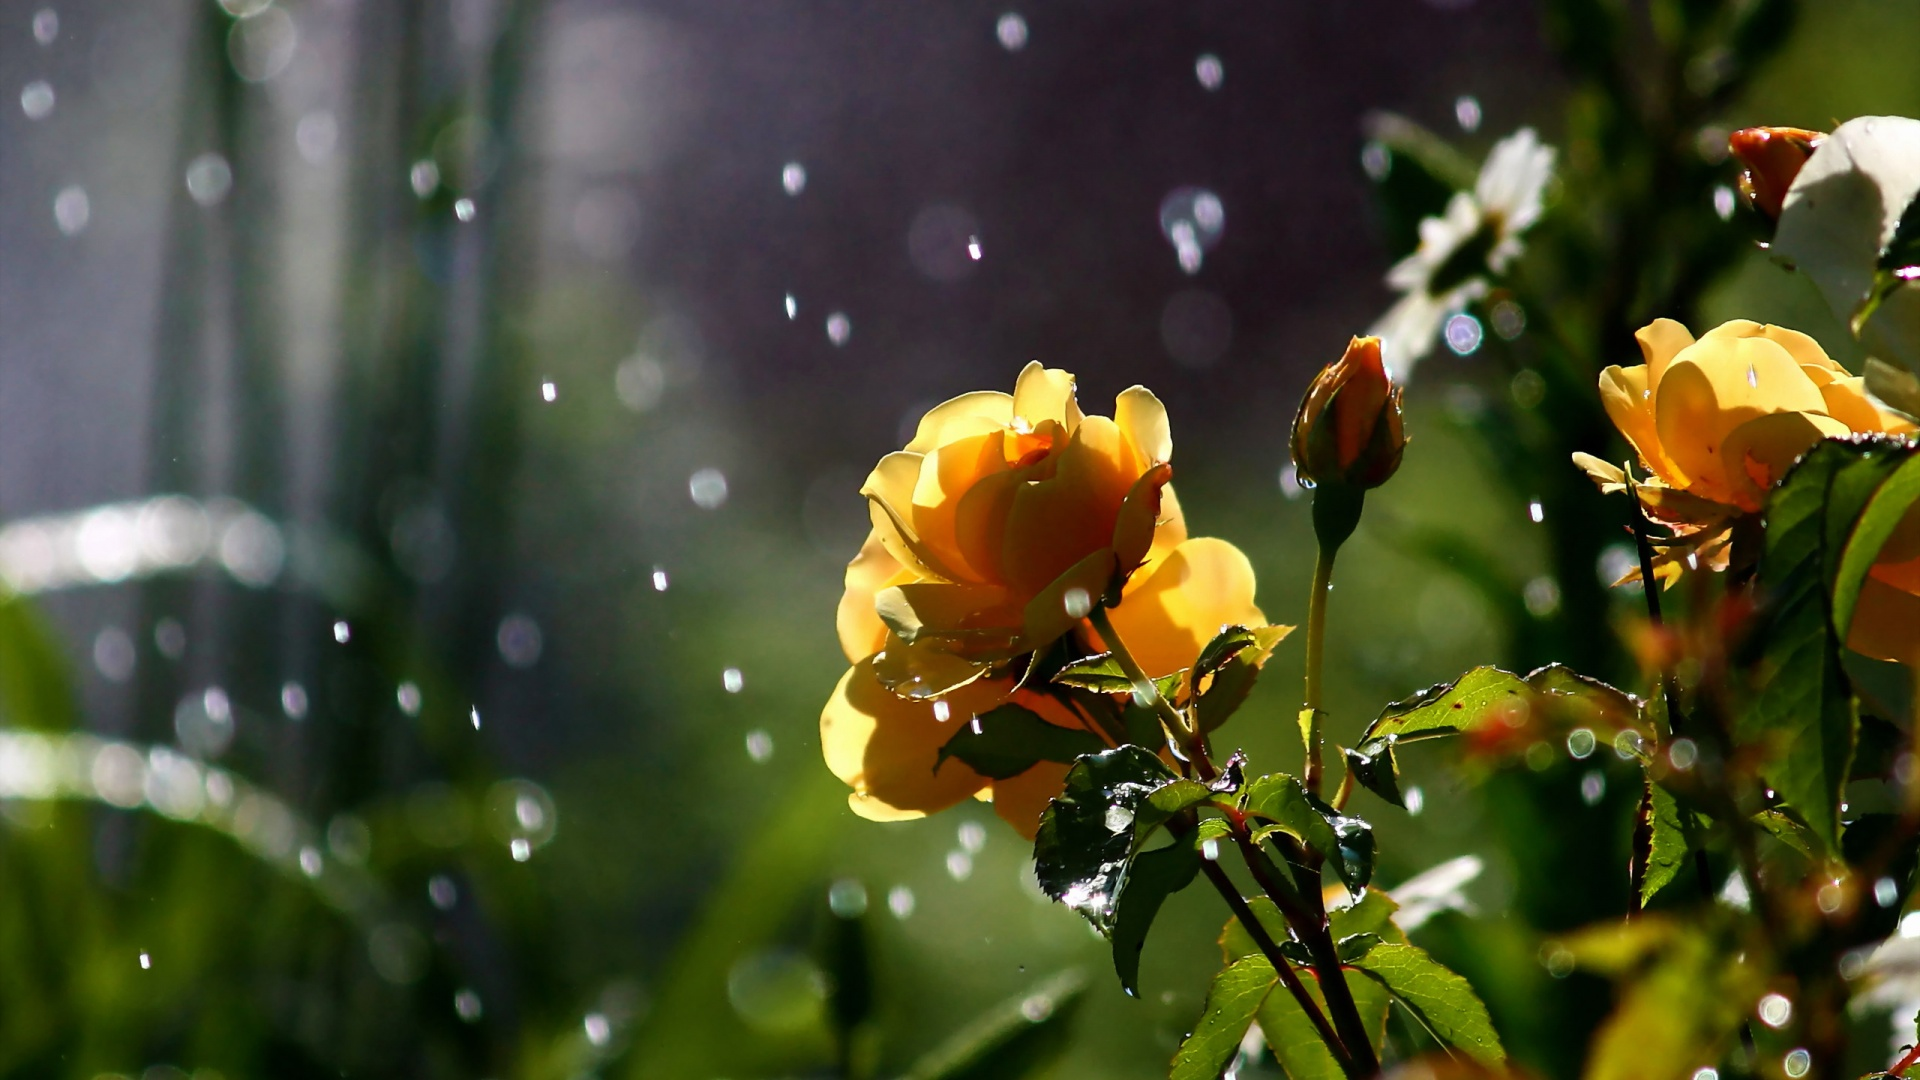 Rose in the rain hd places to wallpaper flowers image with for download thecheapjerseys Gallery